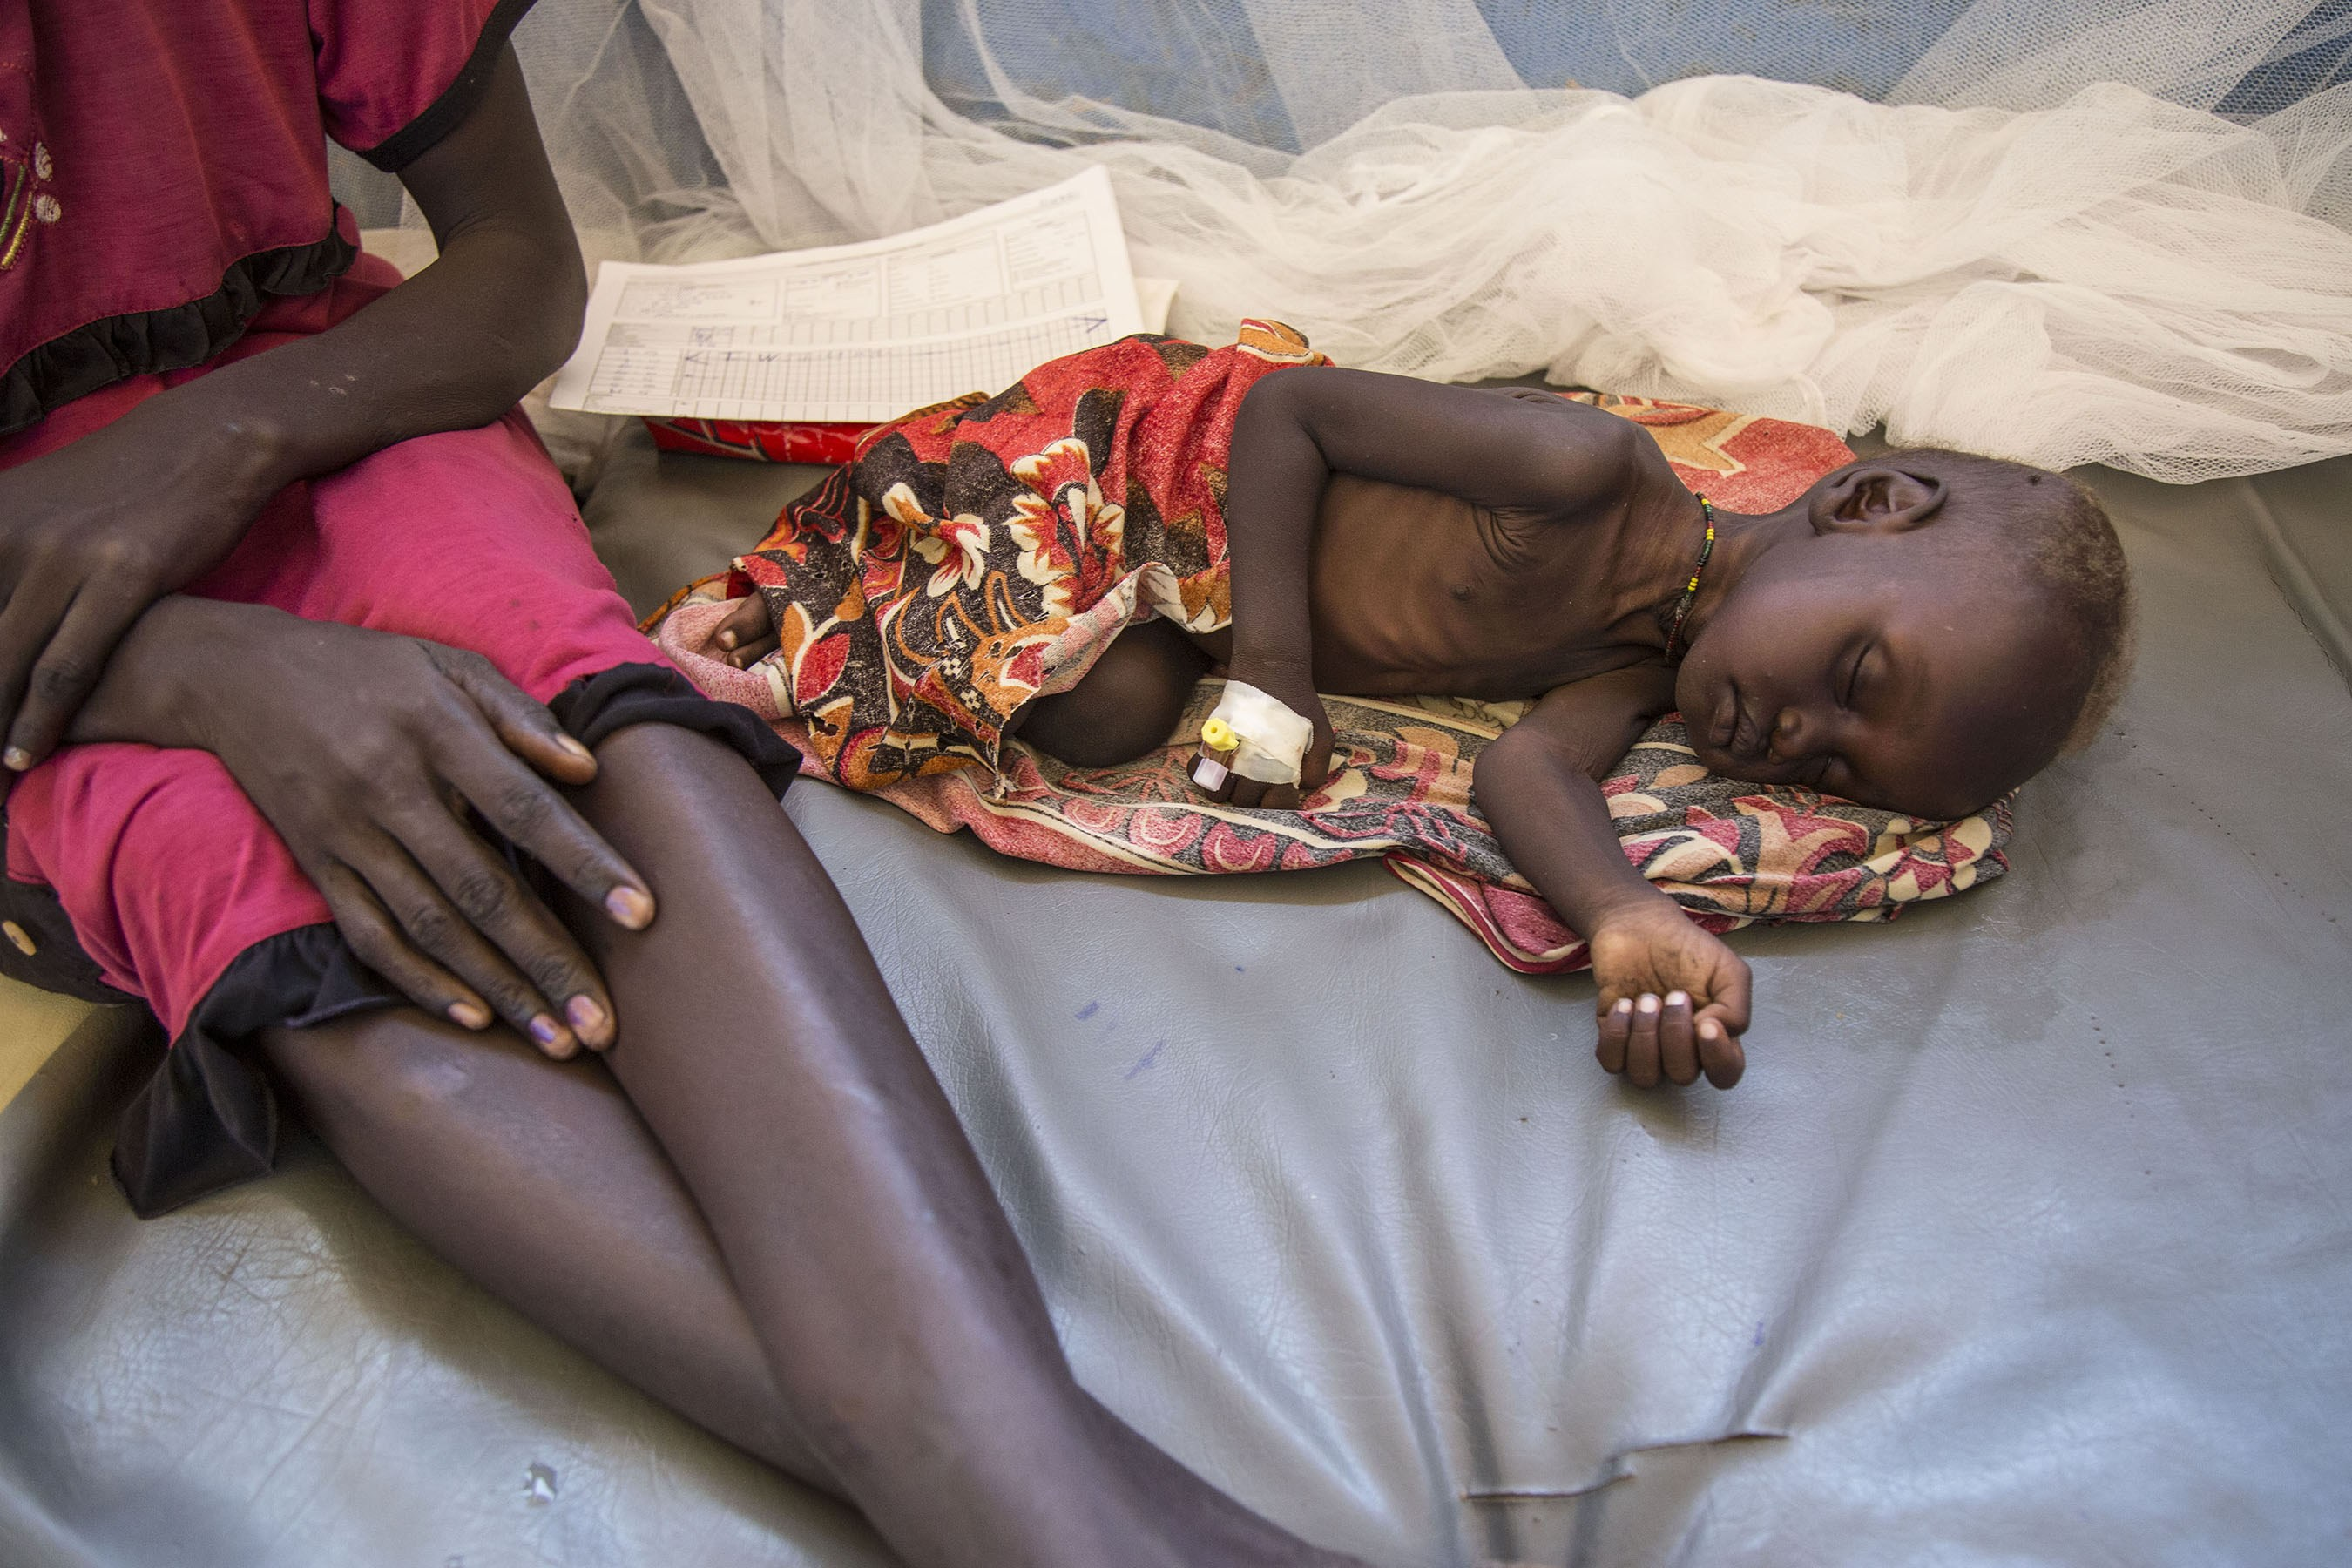 The U.N. estimates that more than 680,000 children in South Sudan suffer from acute malnutrition. (Photo: Benedict Moran)